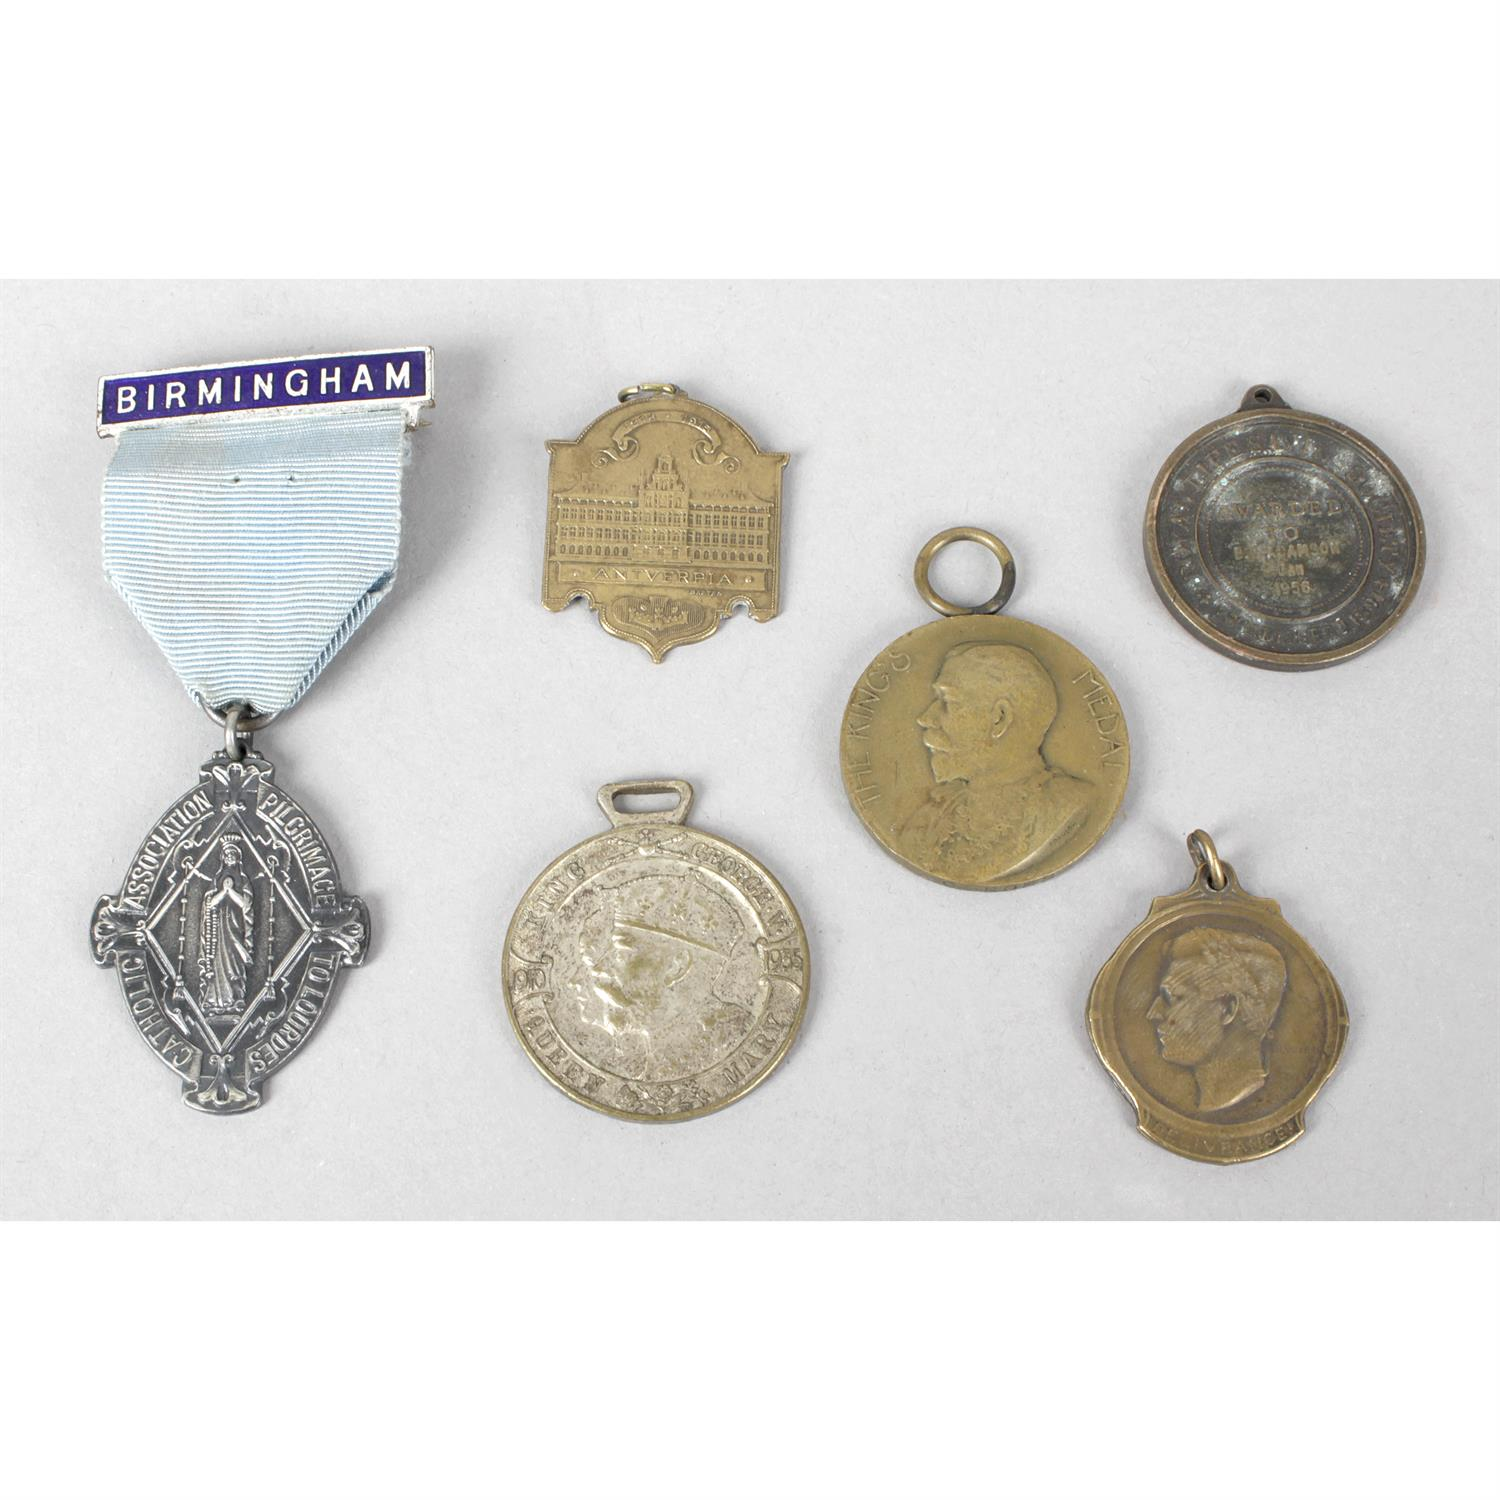 A small mixed selection of base metal badges and bronze medals.